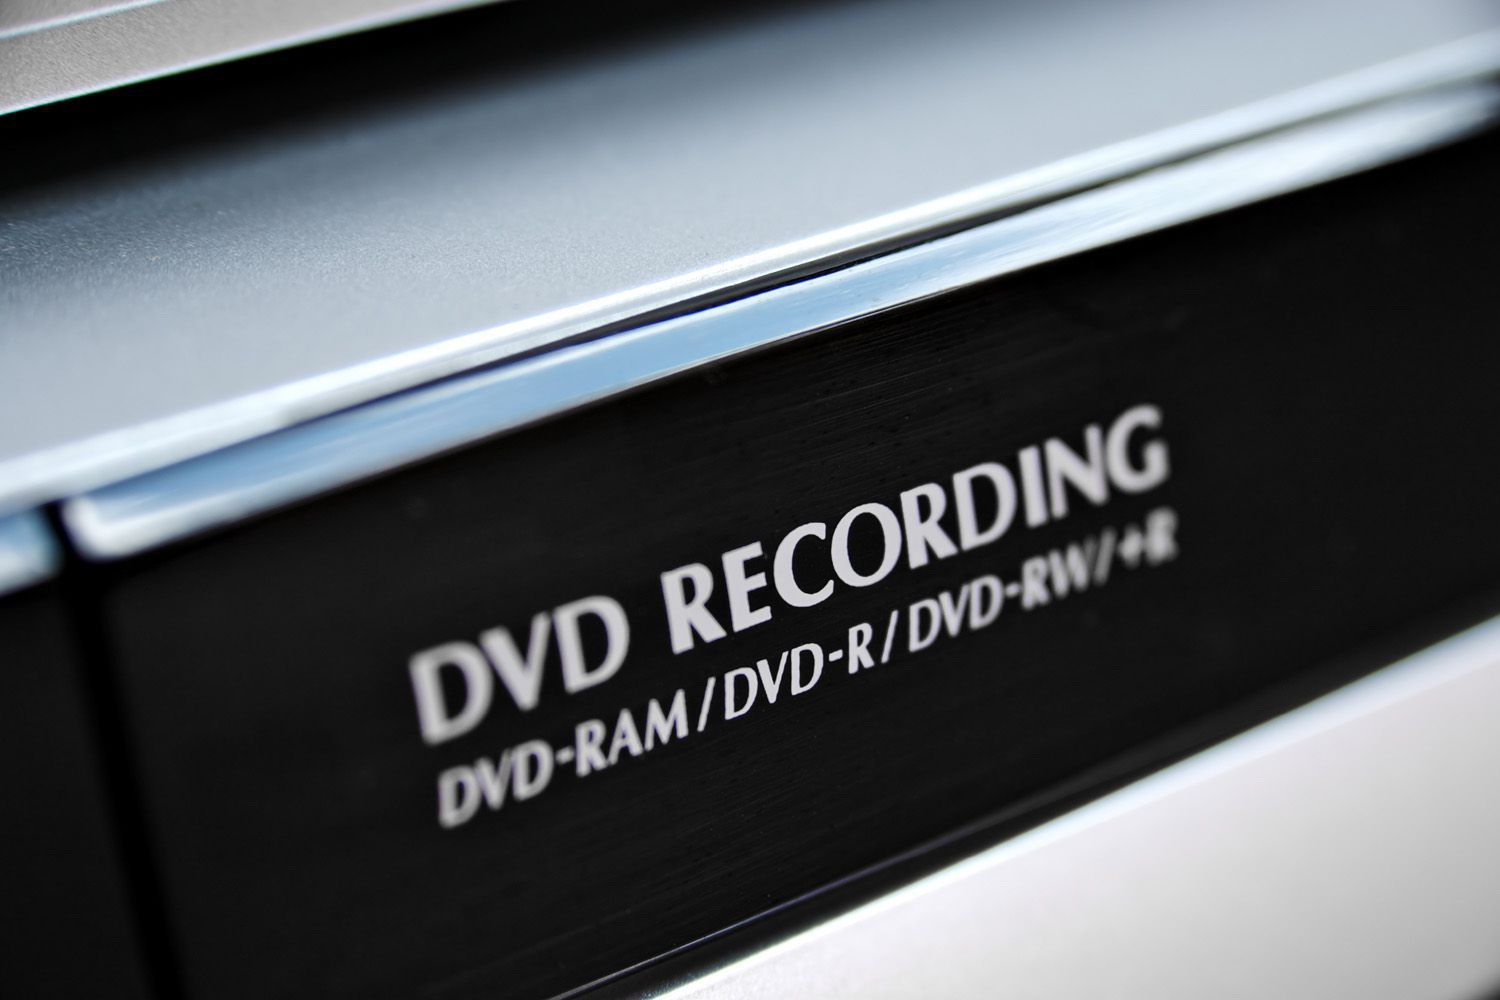 Transfer Shows From Your DVR to DVDLifewire